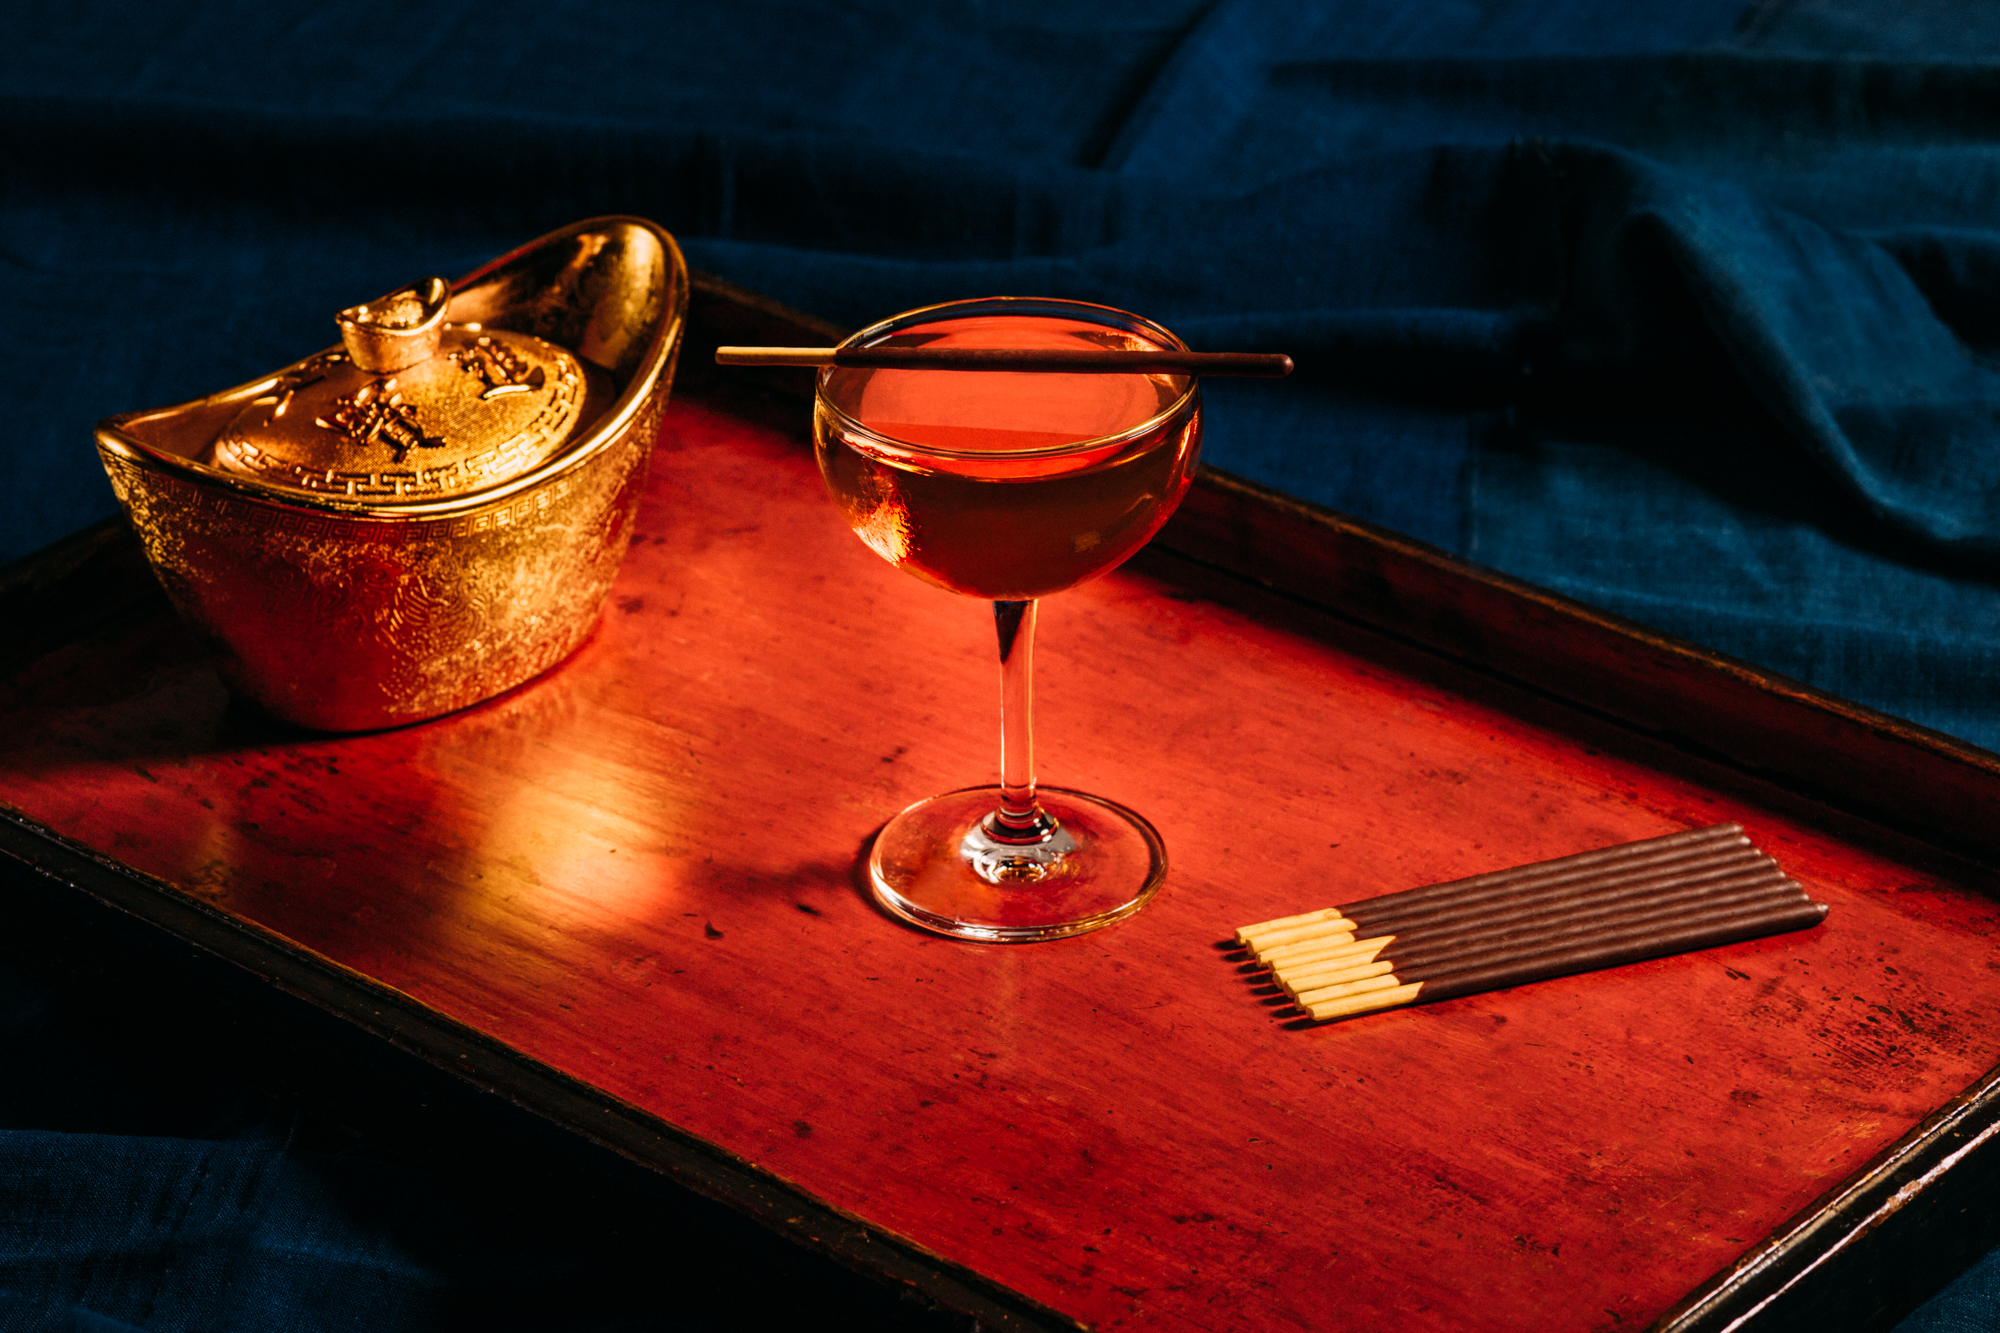 Rice-and-Gold-Photography-Food-and-Drink-All-Good-NYC-Web-6.JPG